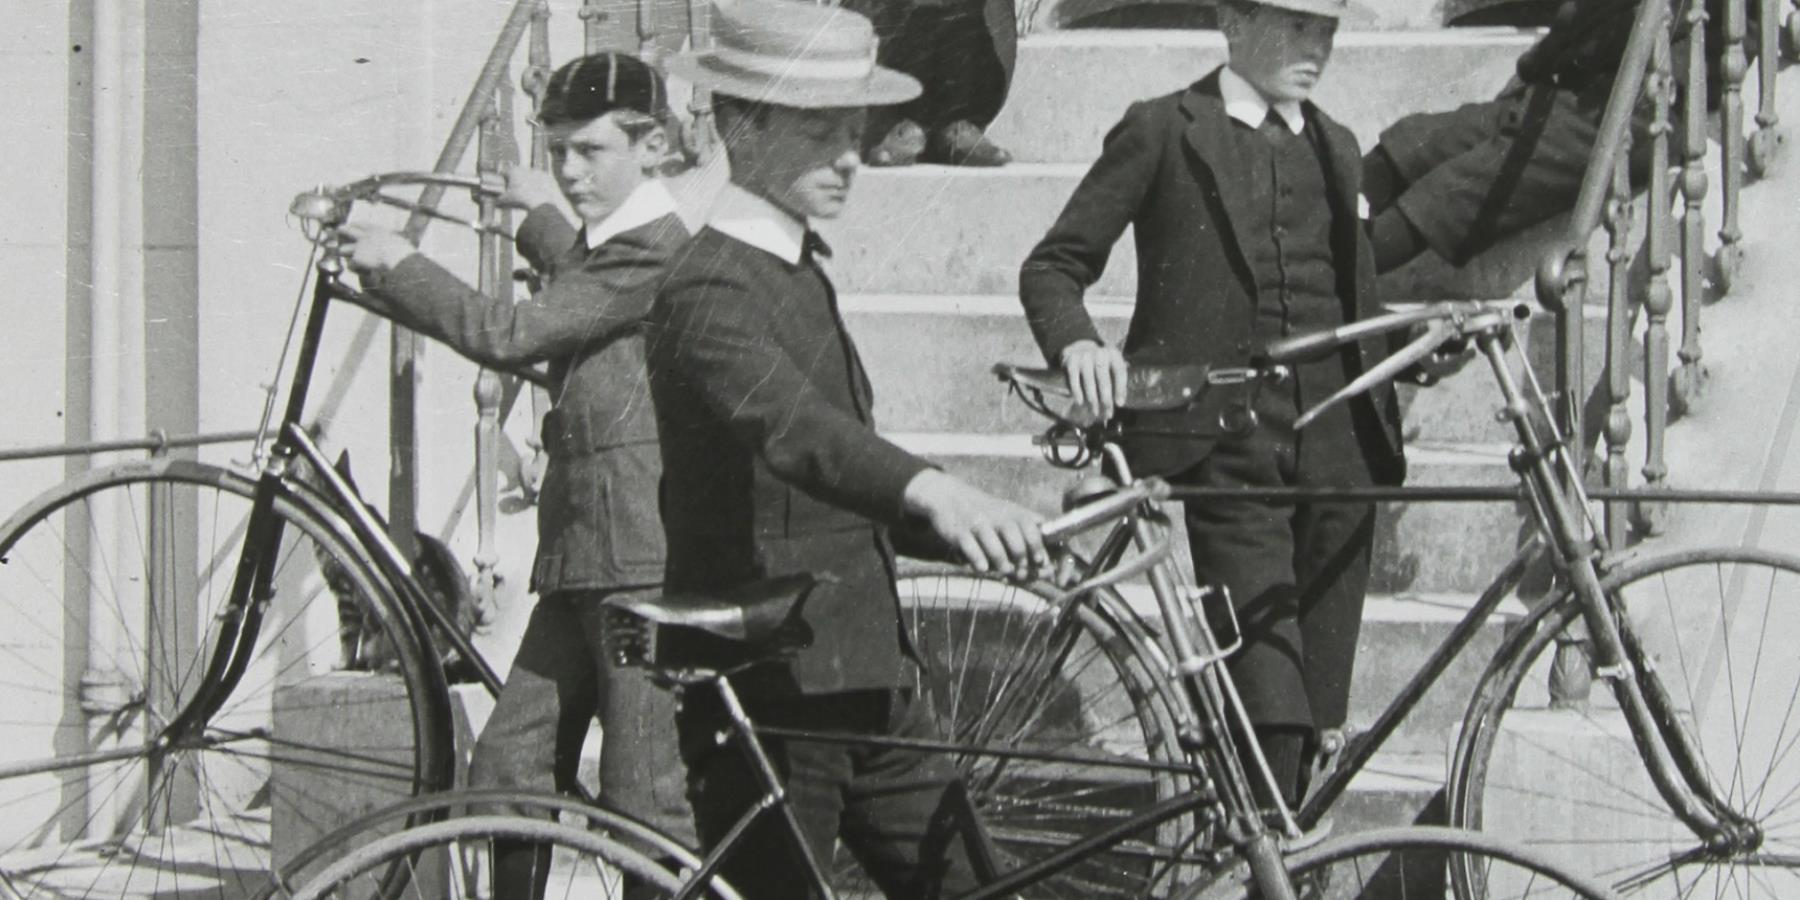 Group of people sitting and standing on steps with bicycles